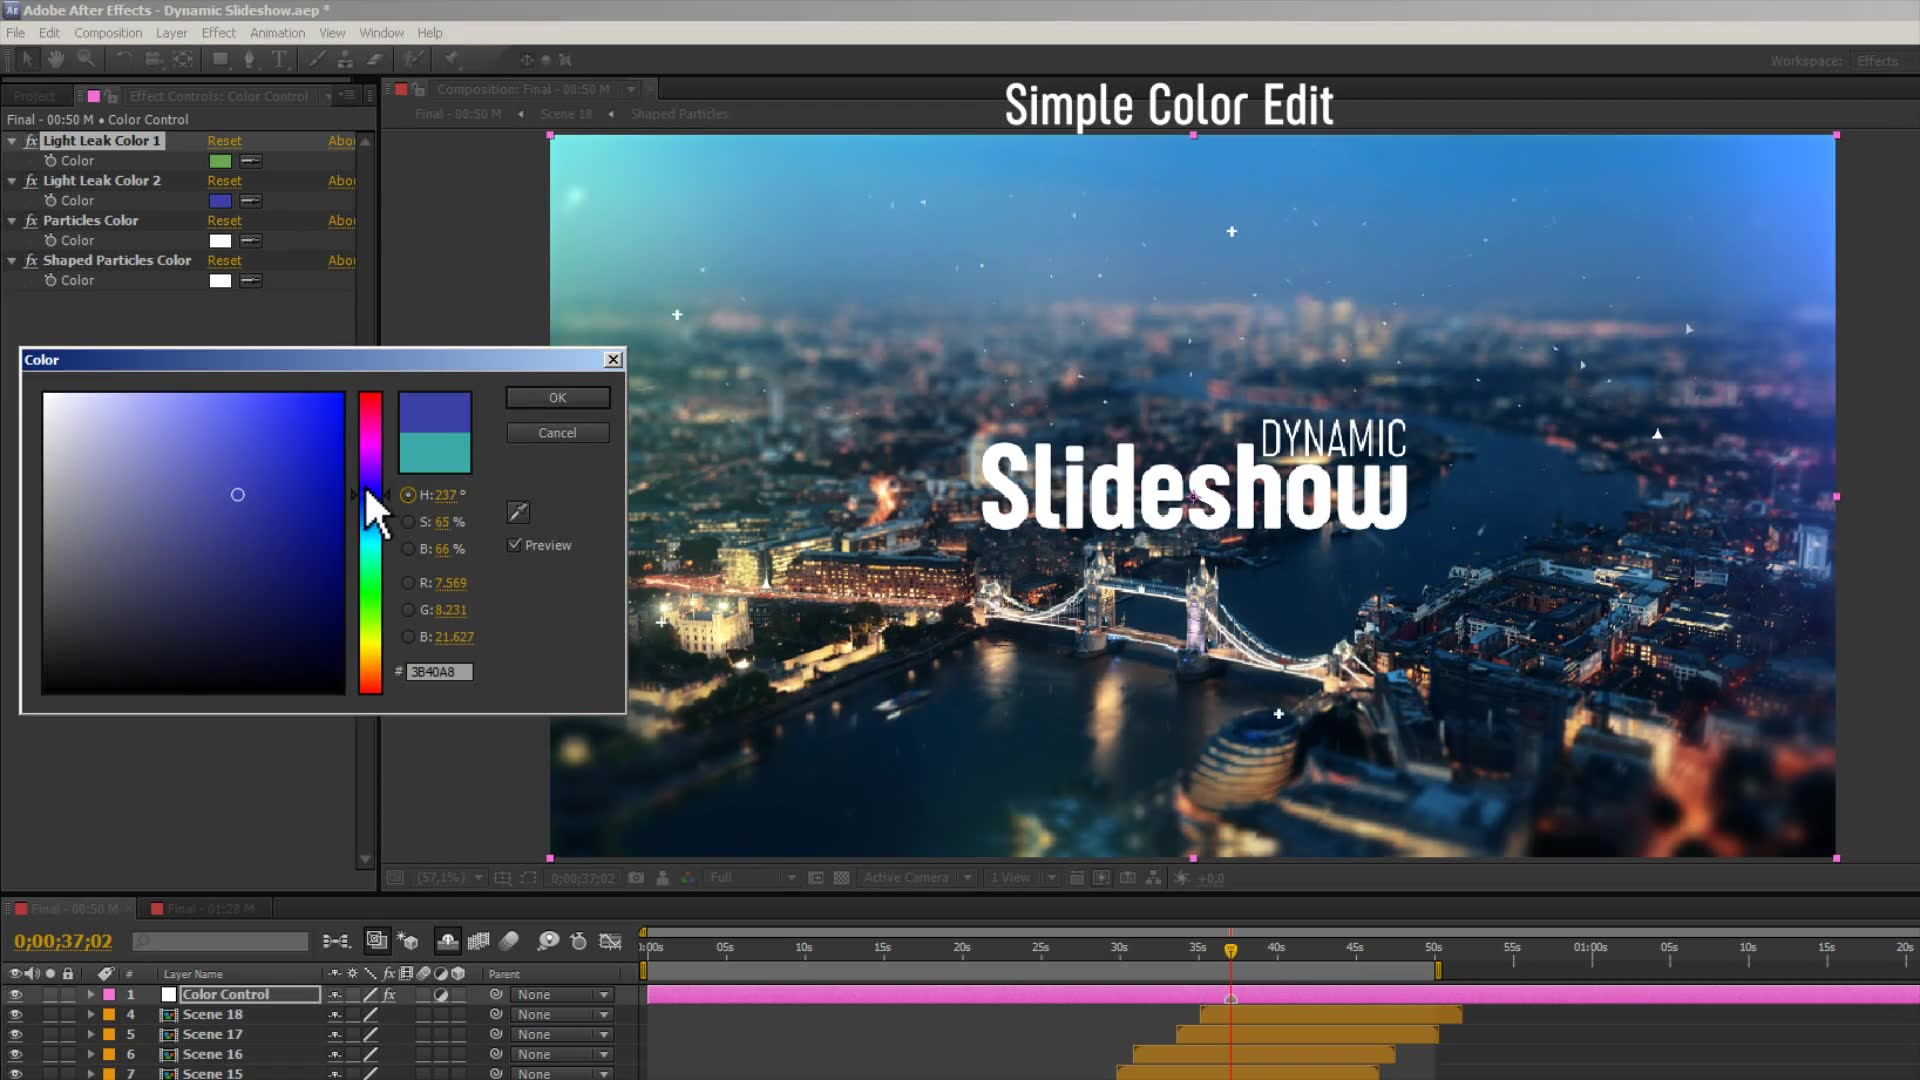 Dynamic Slideshow - Download Videohive 22797718